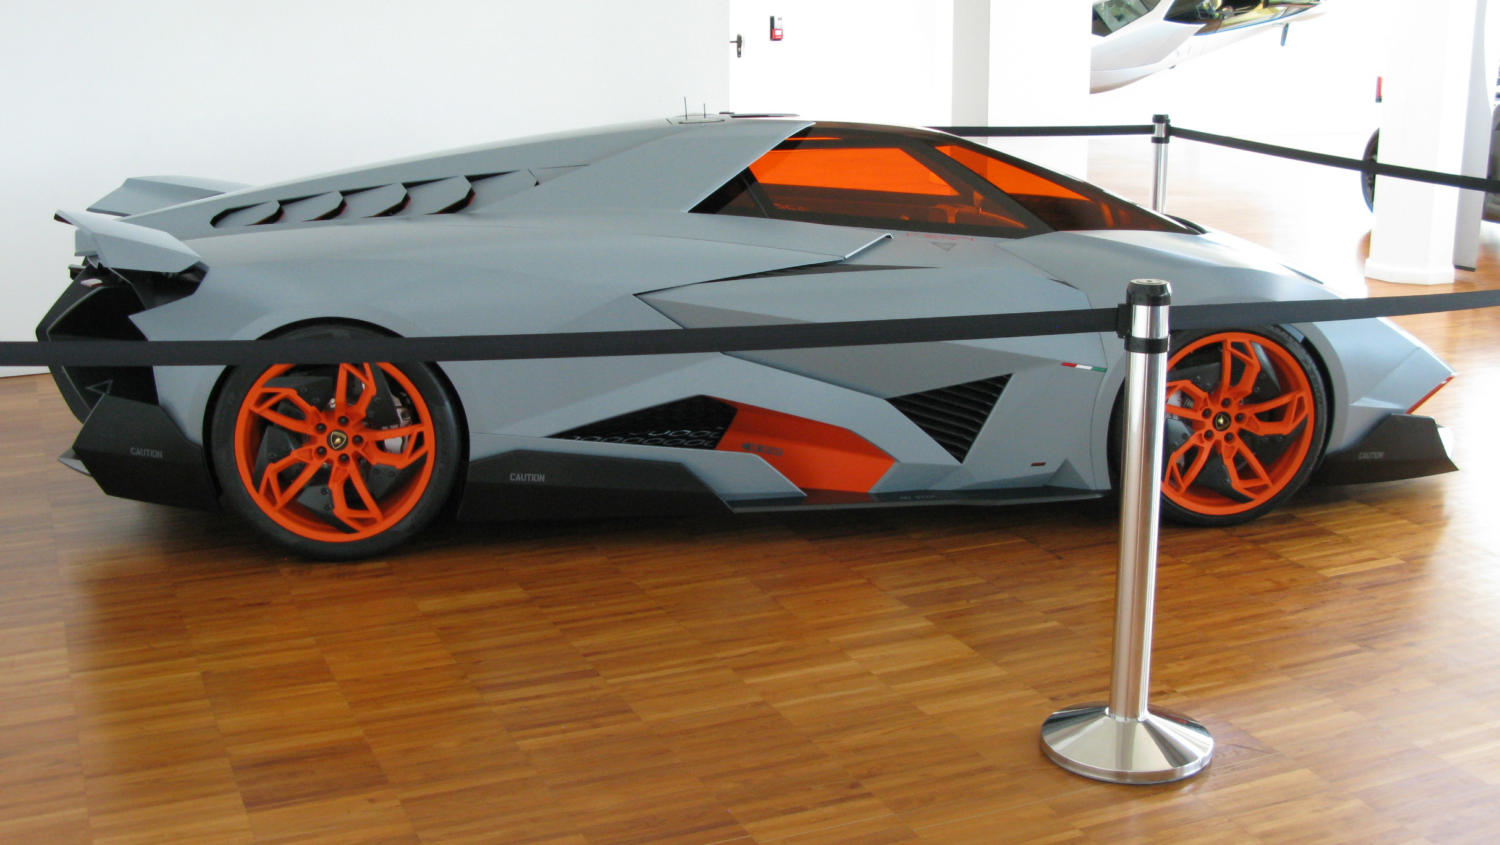 Do You Like Cars Check Out This List Of The Top 10 Most Expensive